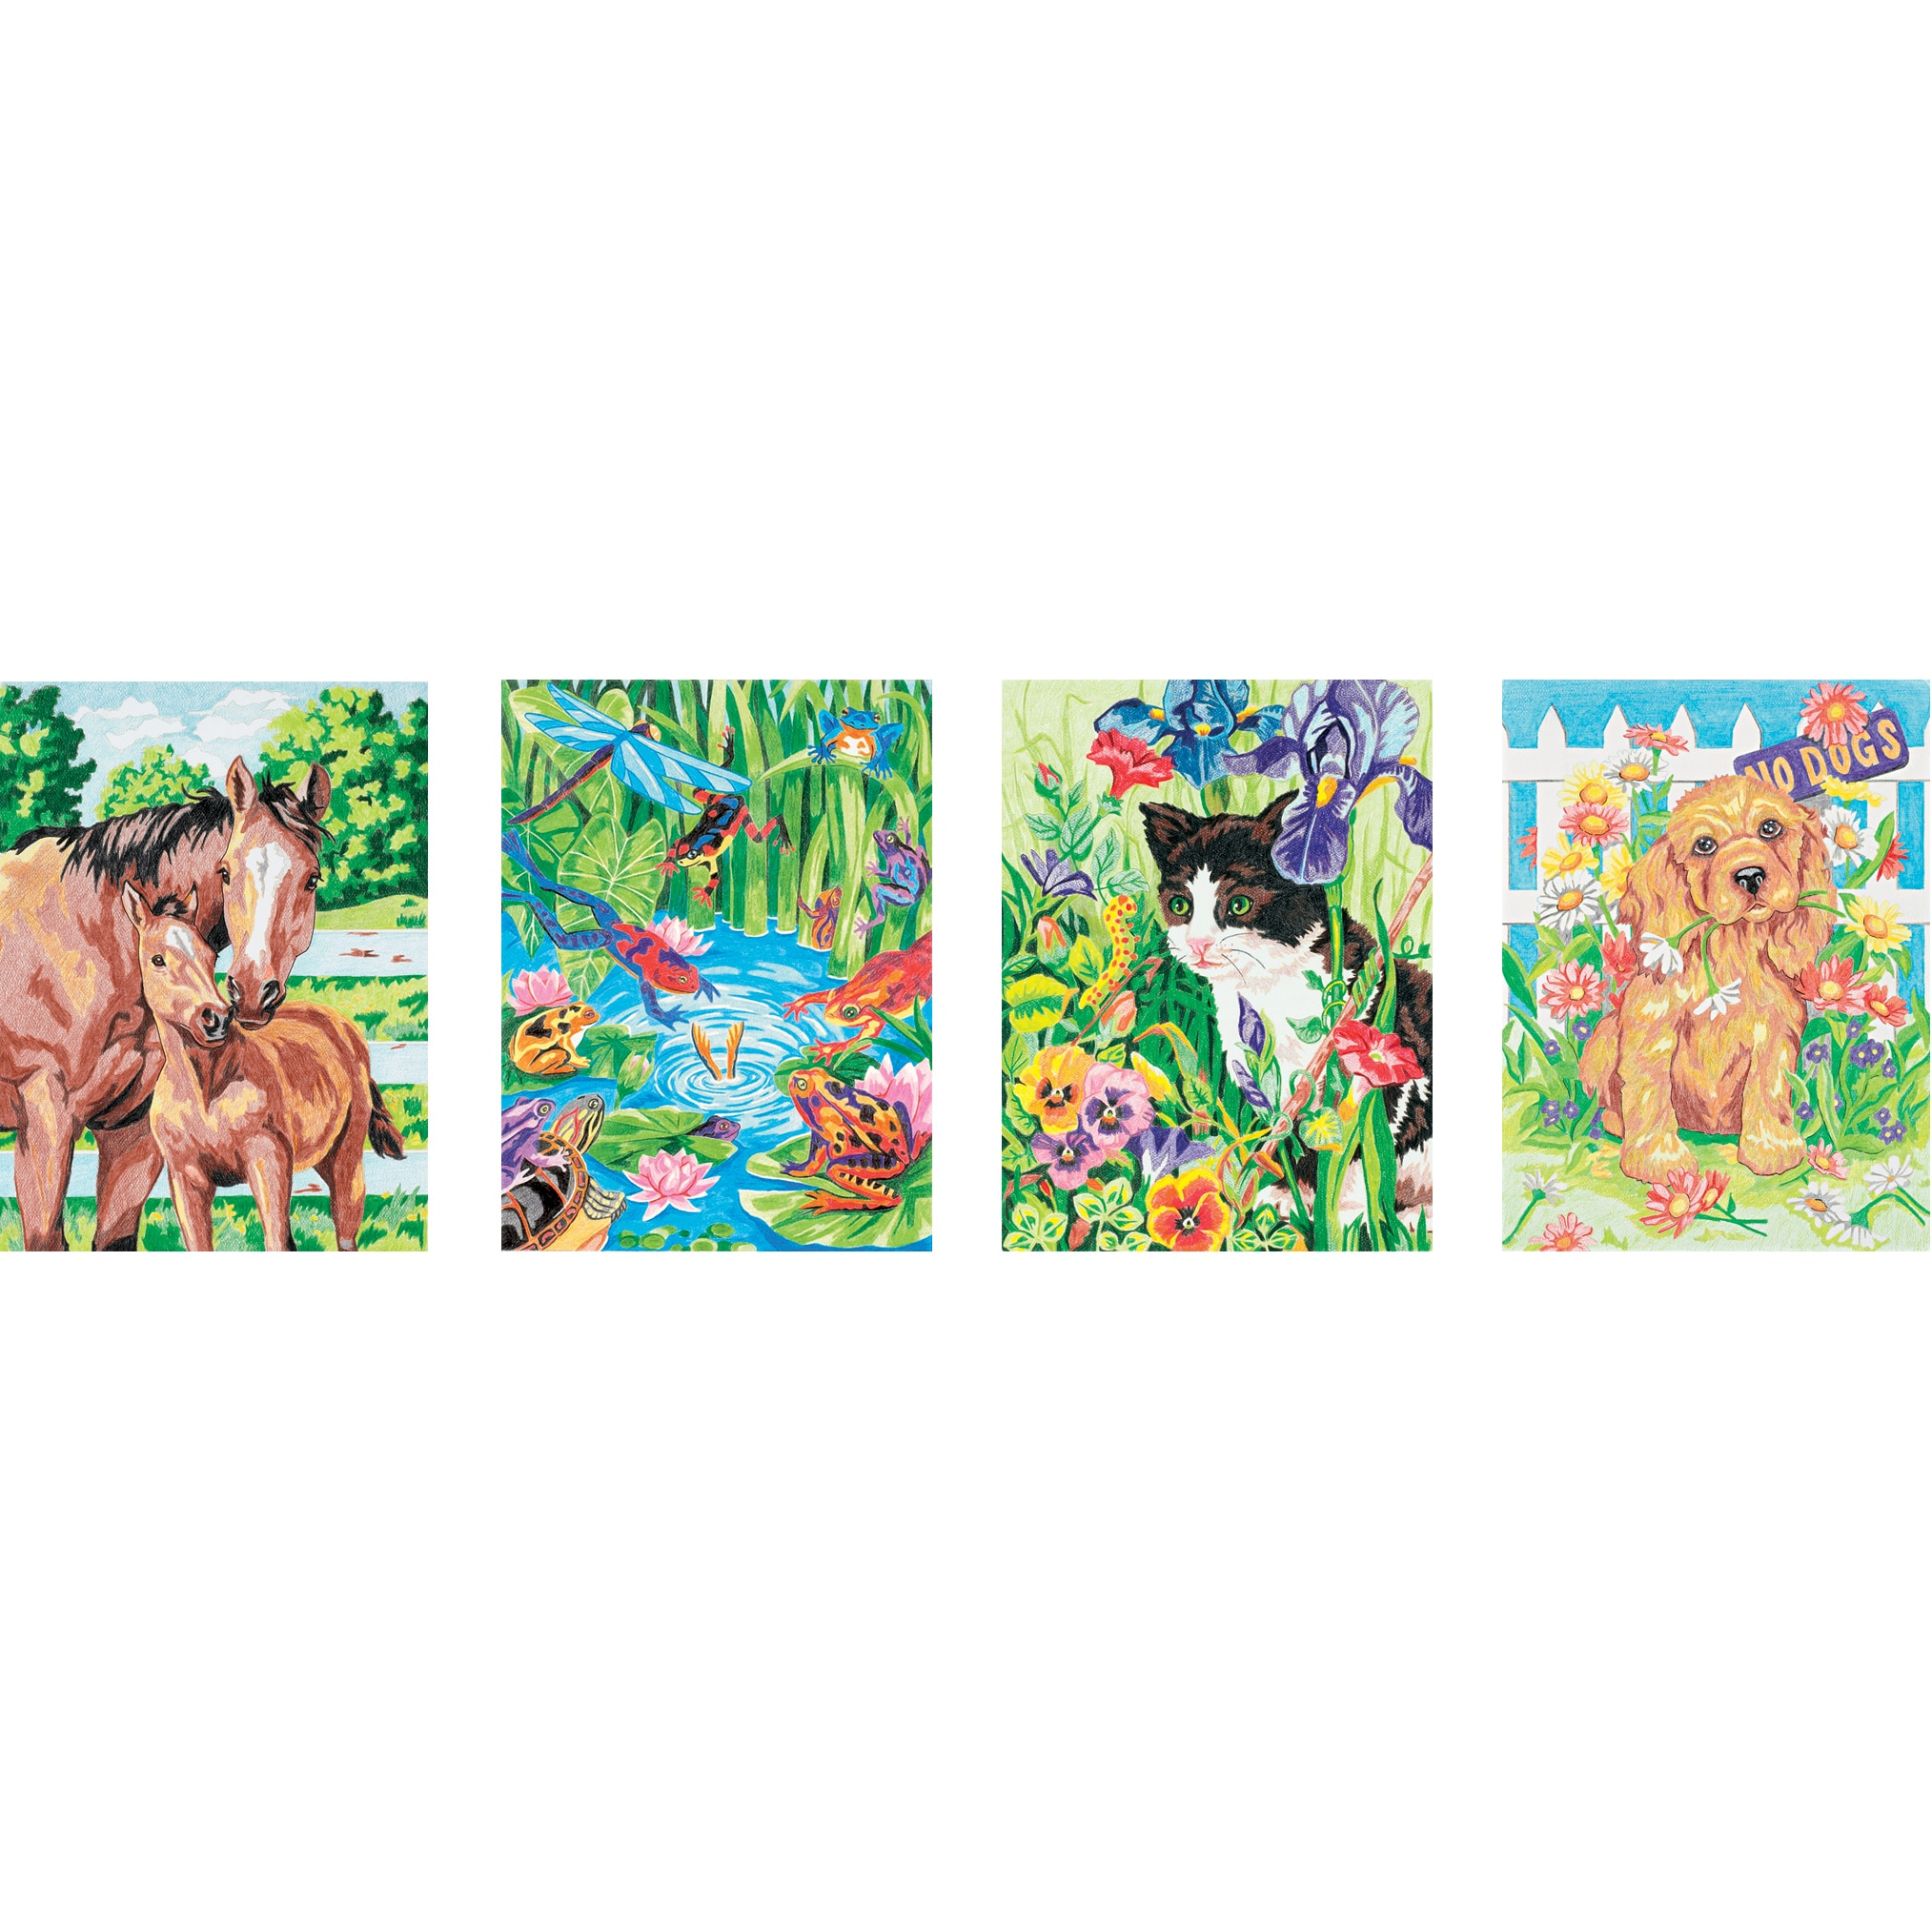 PENCILWORKS Pencil by Number Kit Coloring KITTENS Dimensions 9 x 12